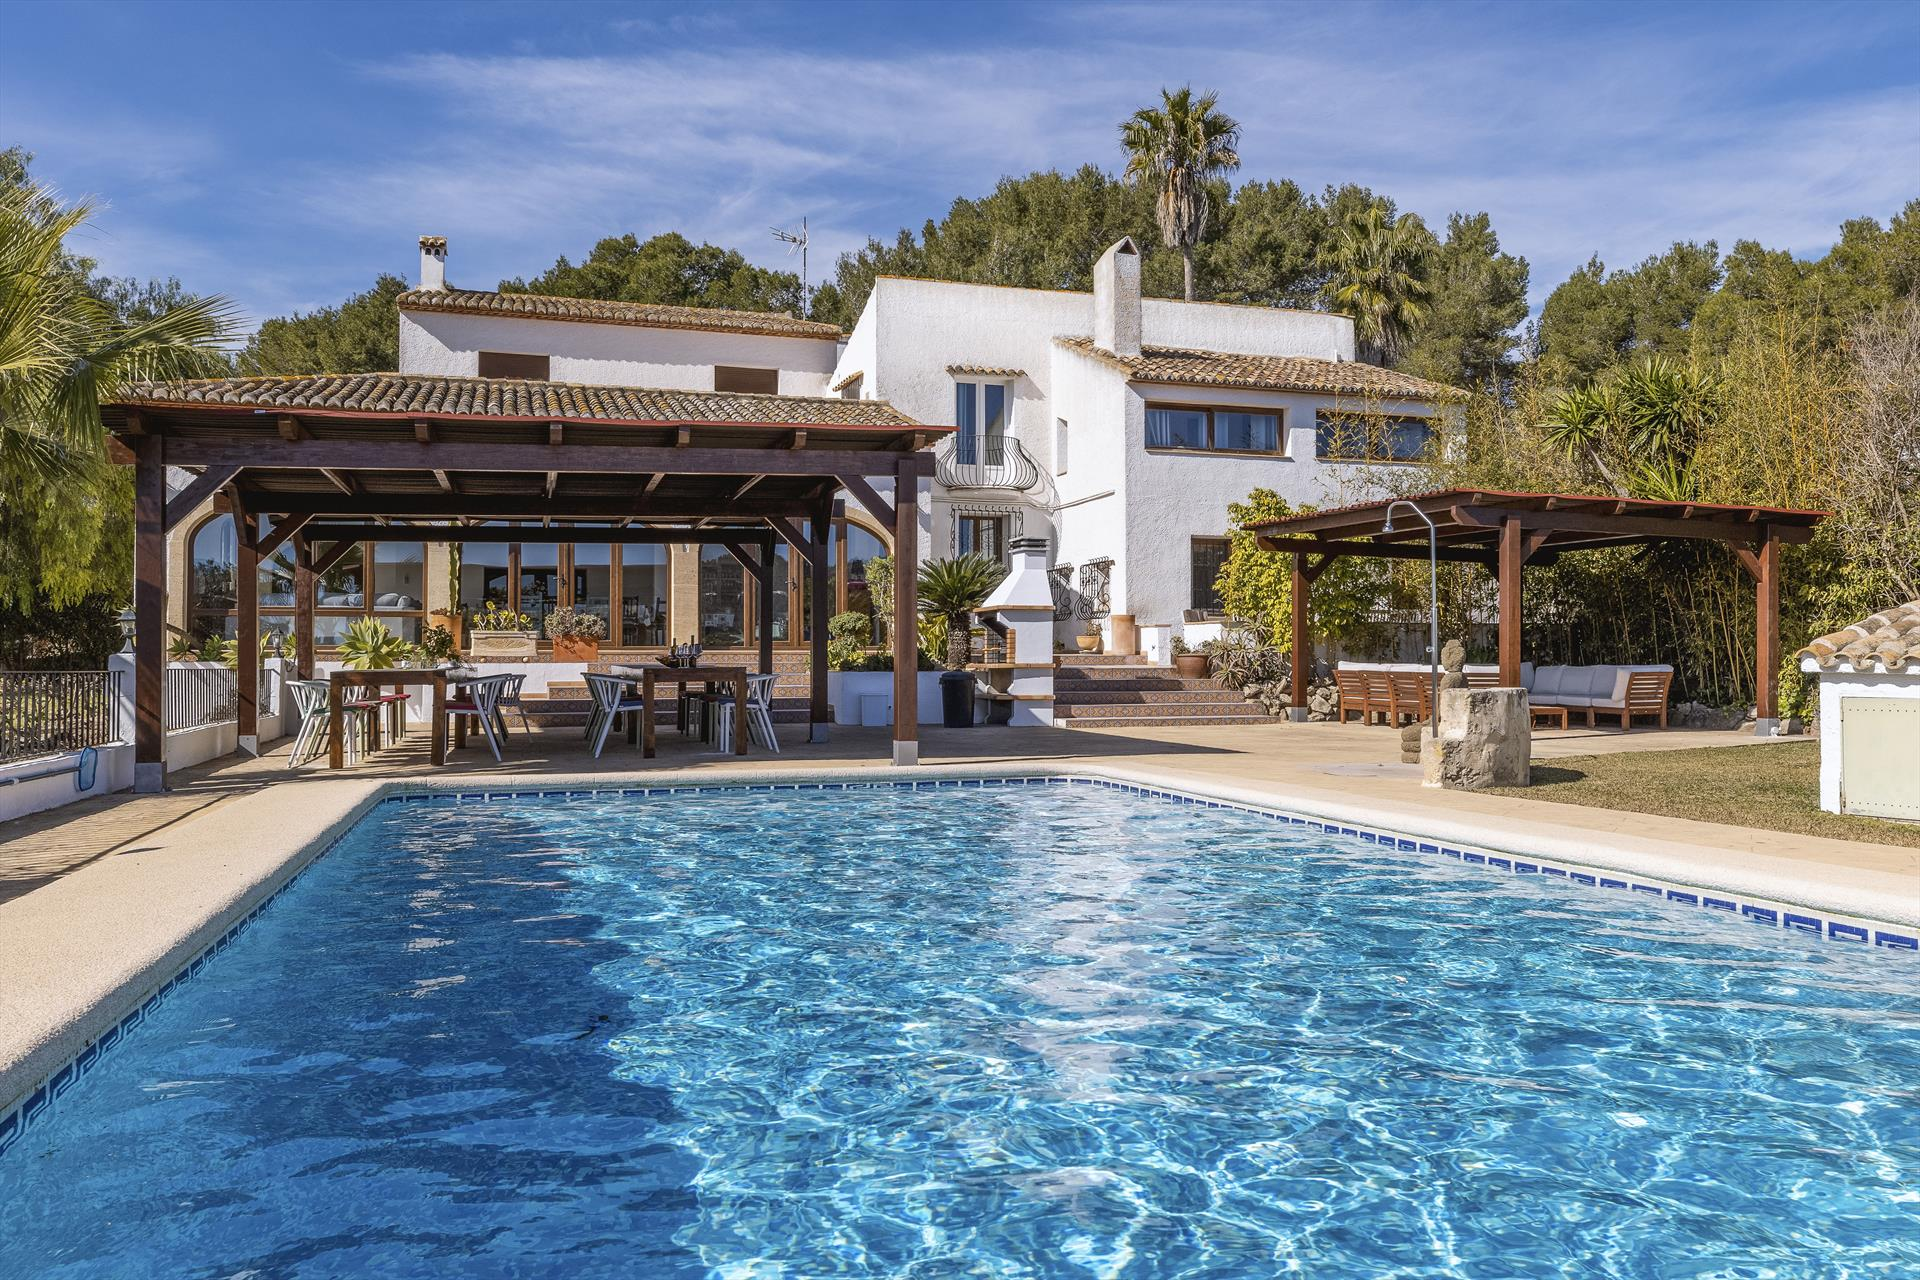 Casa Rosalia 22 pax, Large and cheerful luxury villa in Javea, on the Costa Blanca, Spain  with private pool for 22 persons...